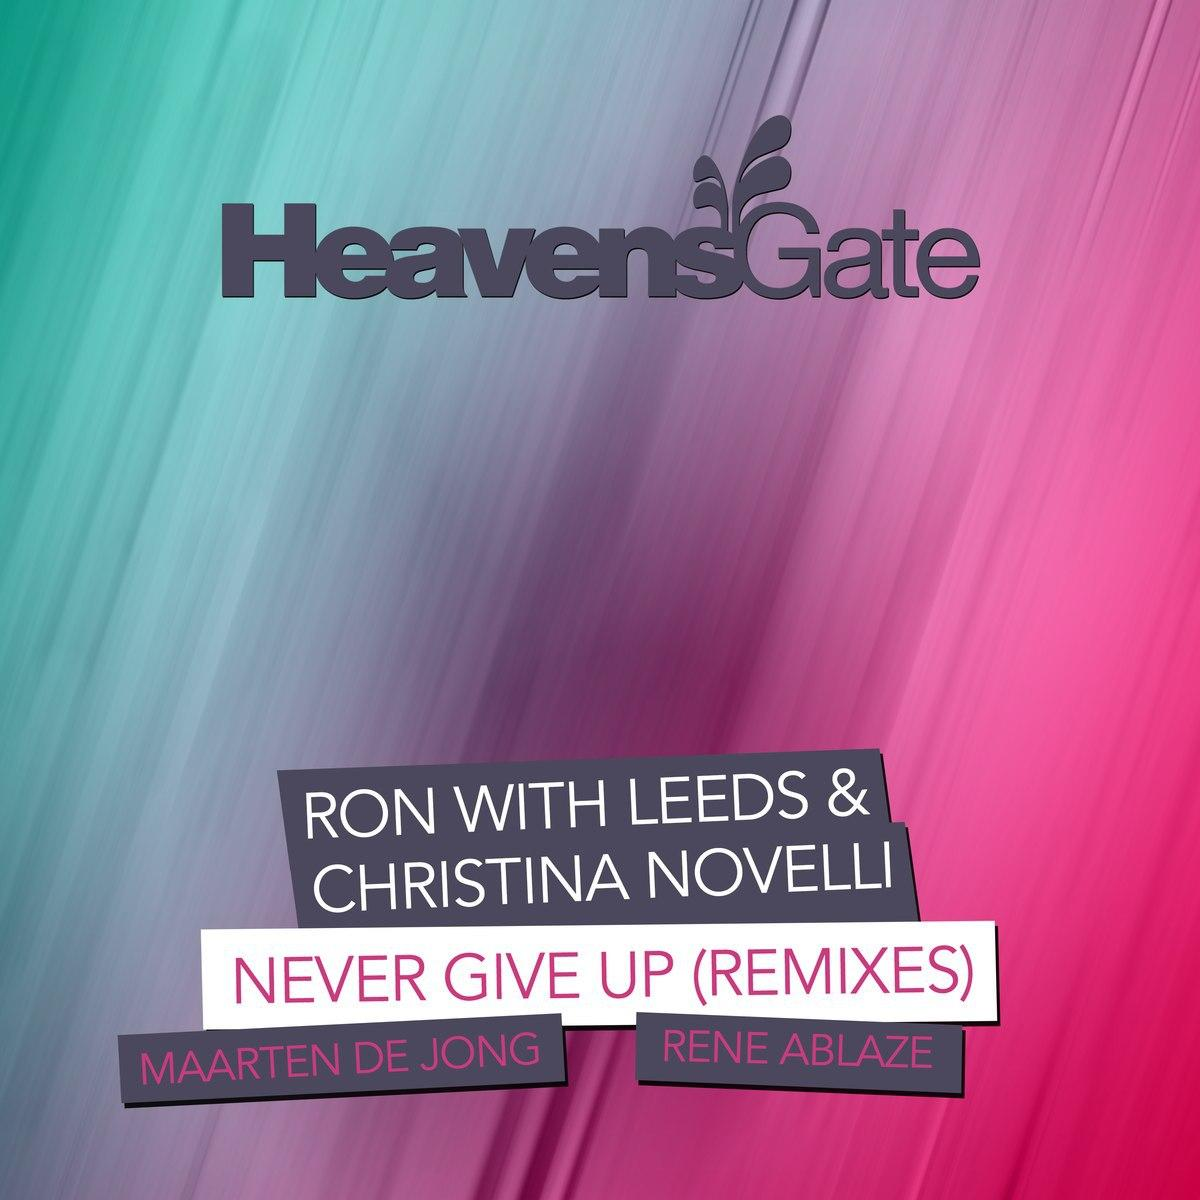 Ron with Leeds & Christina Novelli - Never Give Up (Maarten de Jong Extended Remix)